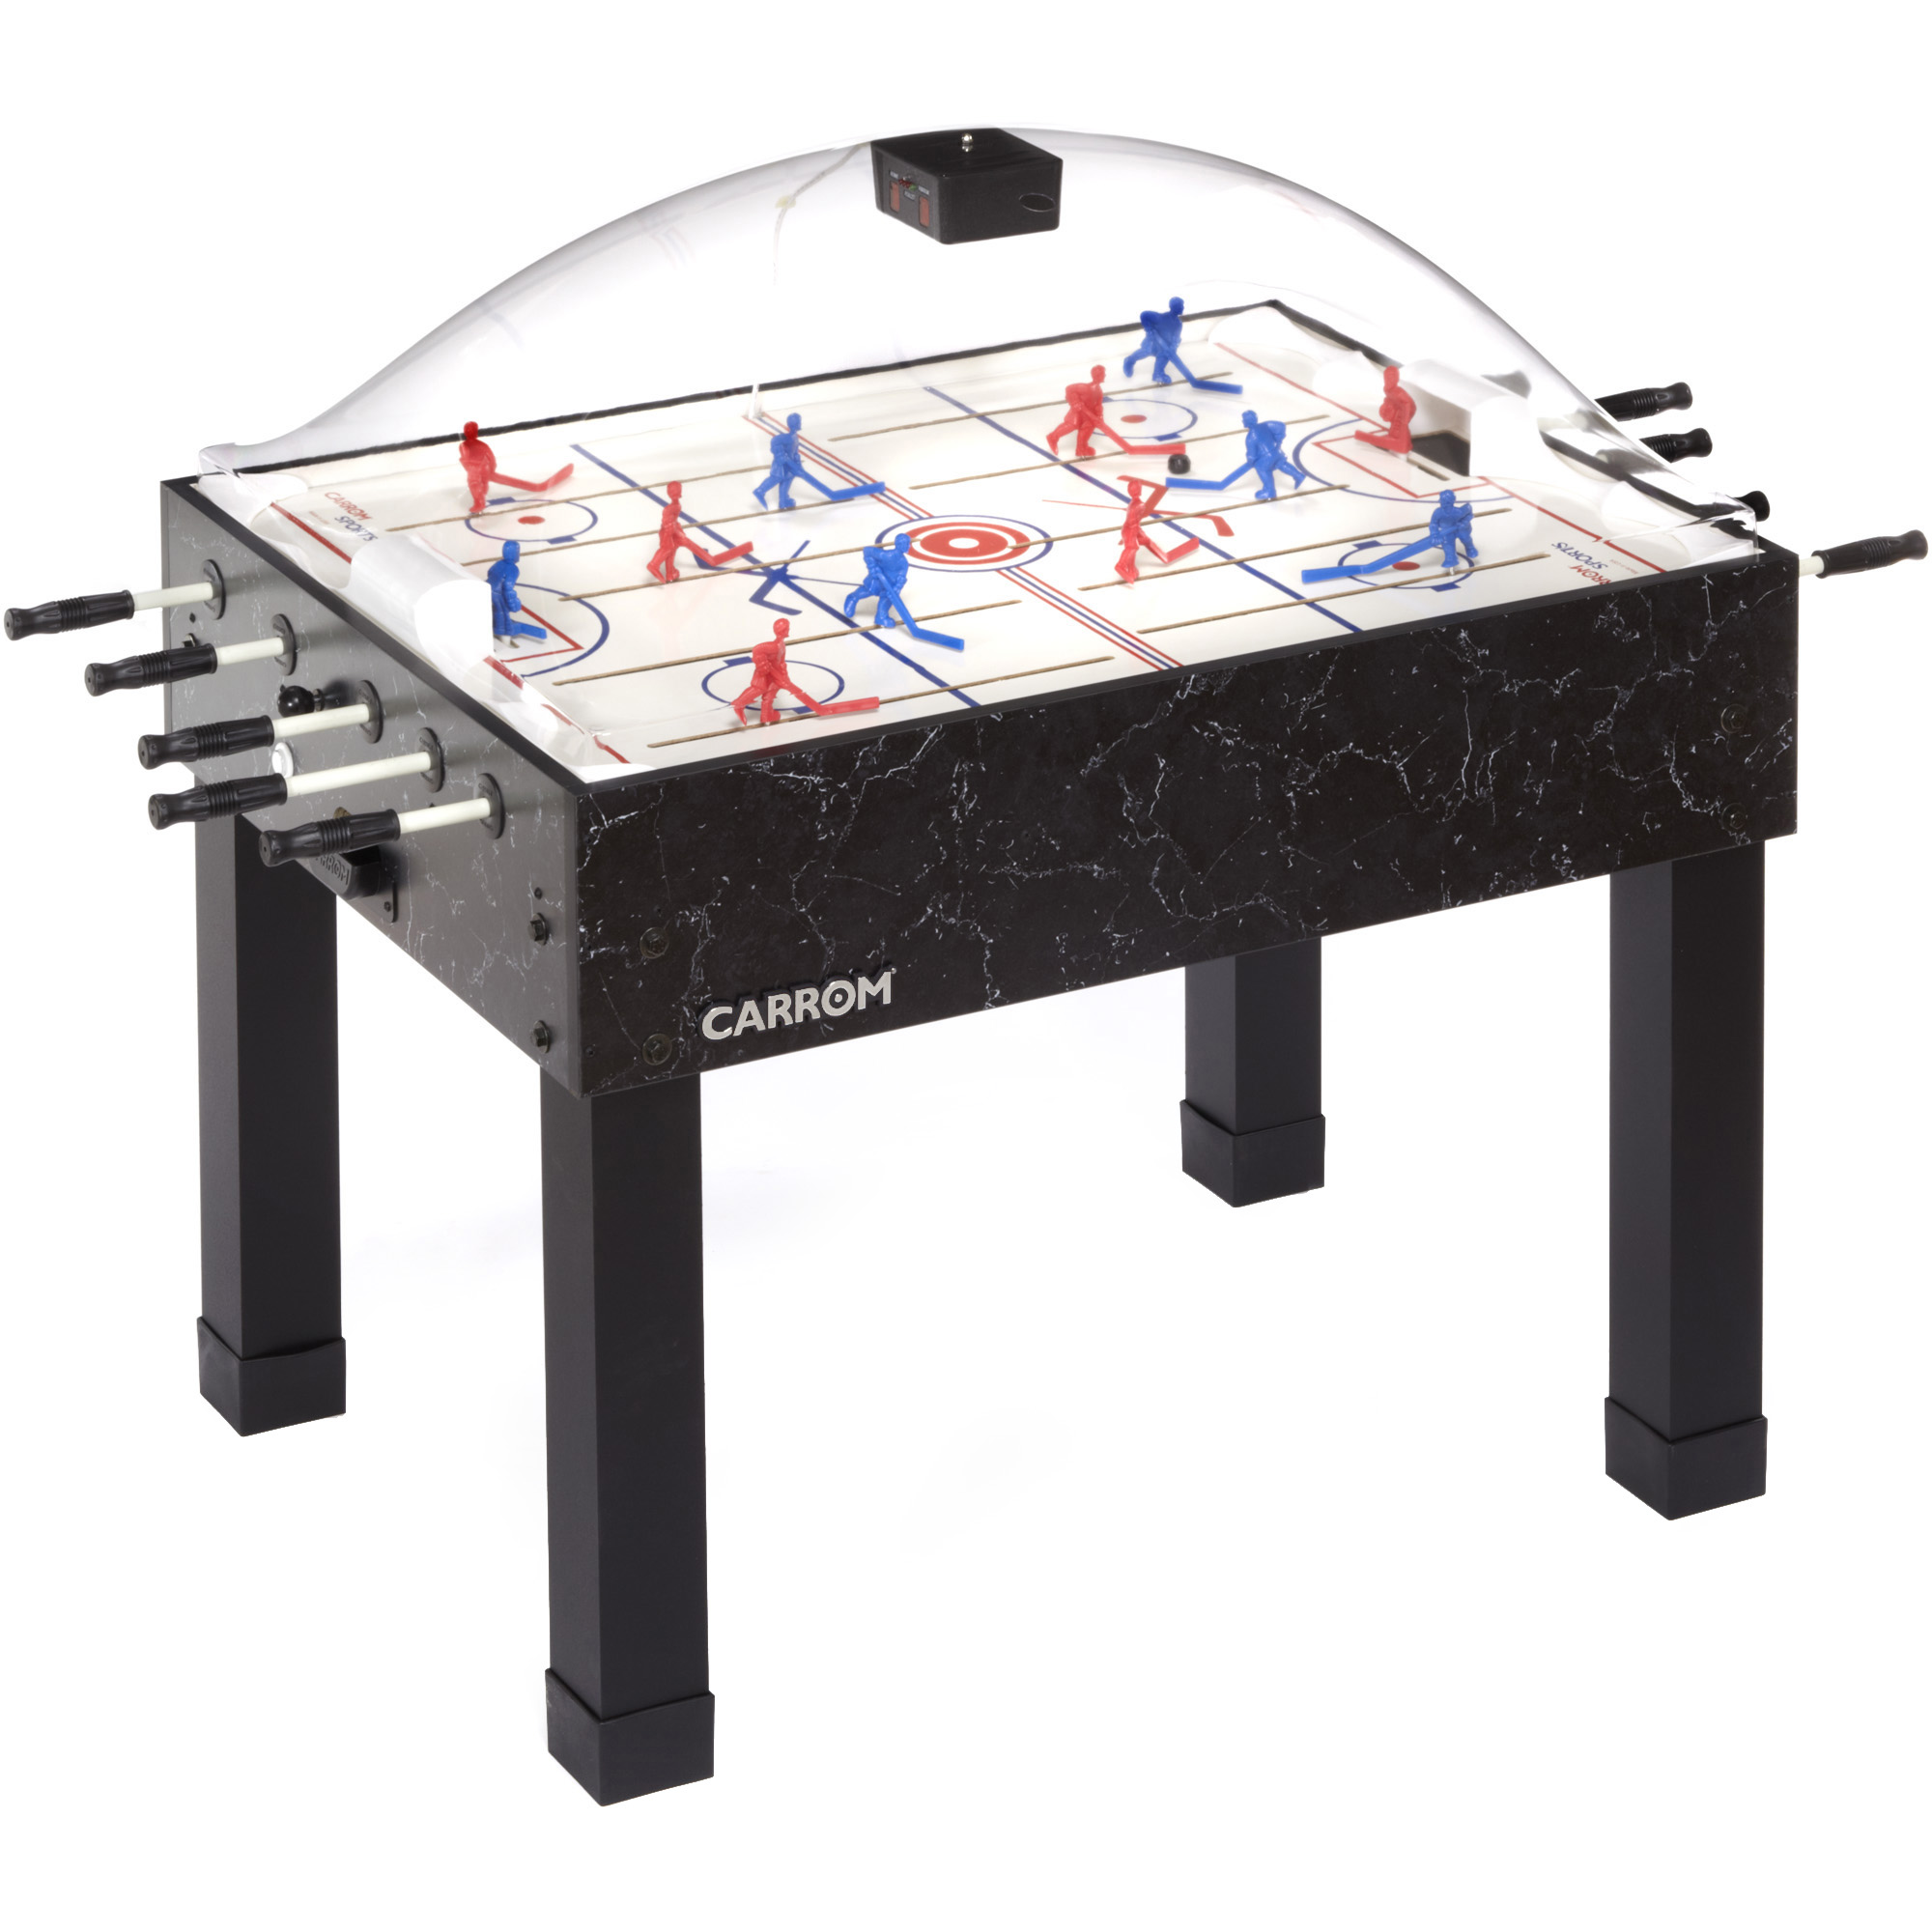 Super Stick Hockey - Carrom Company